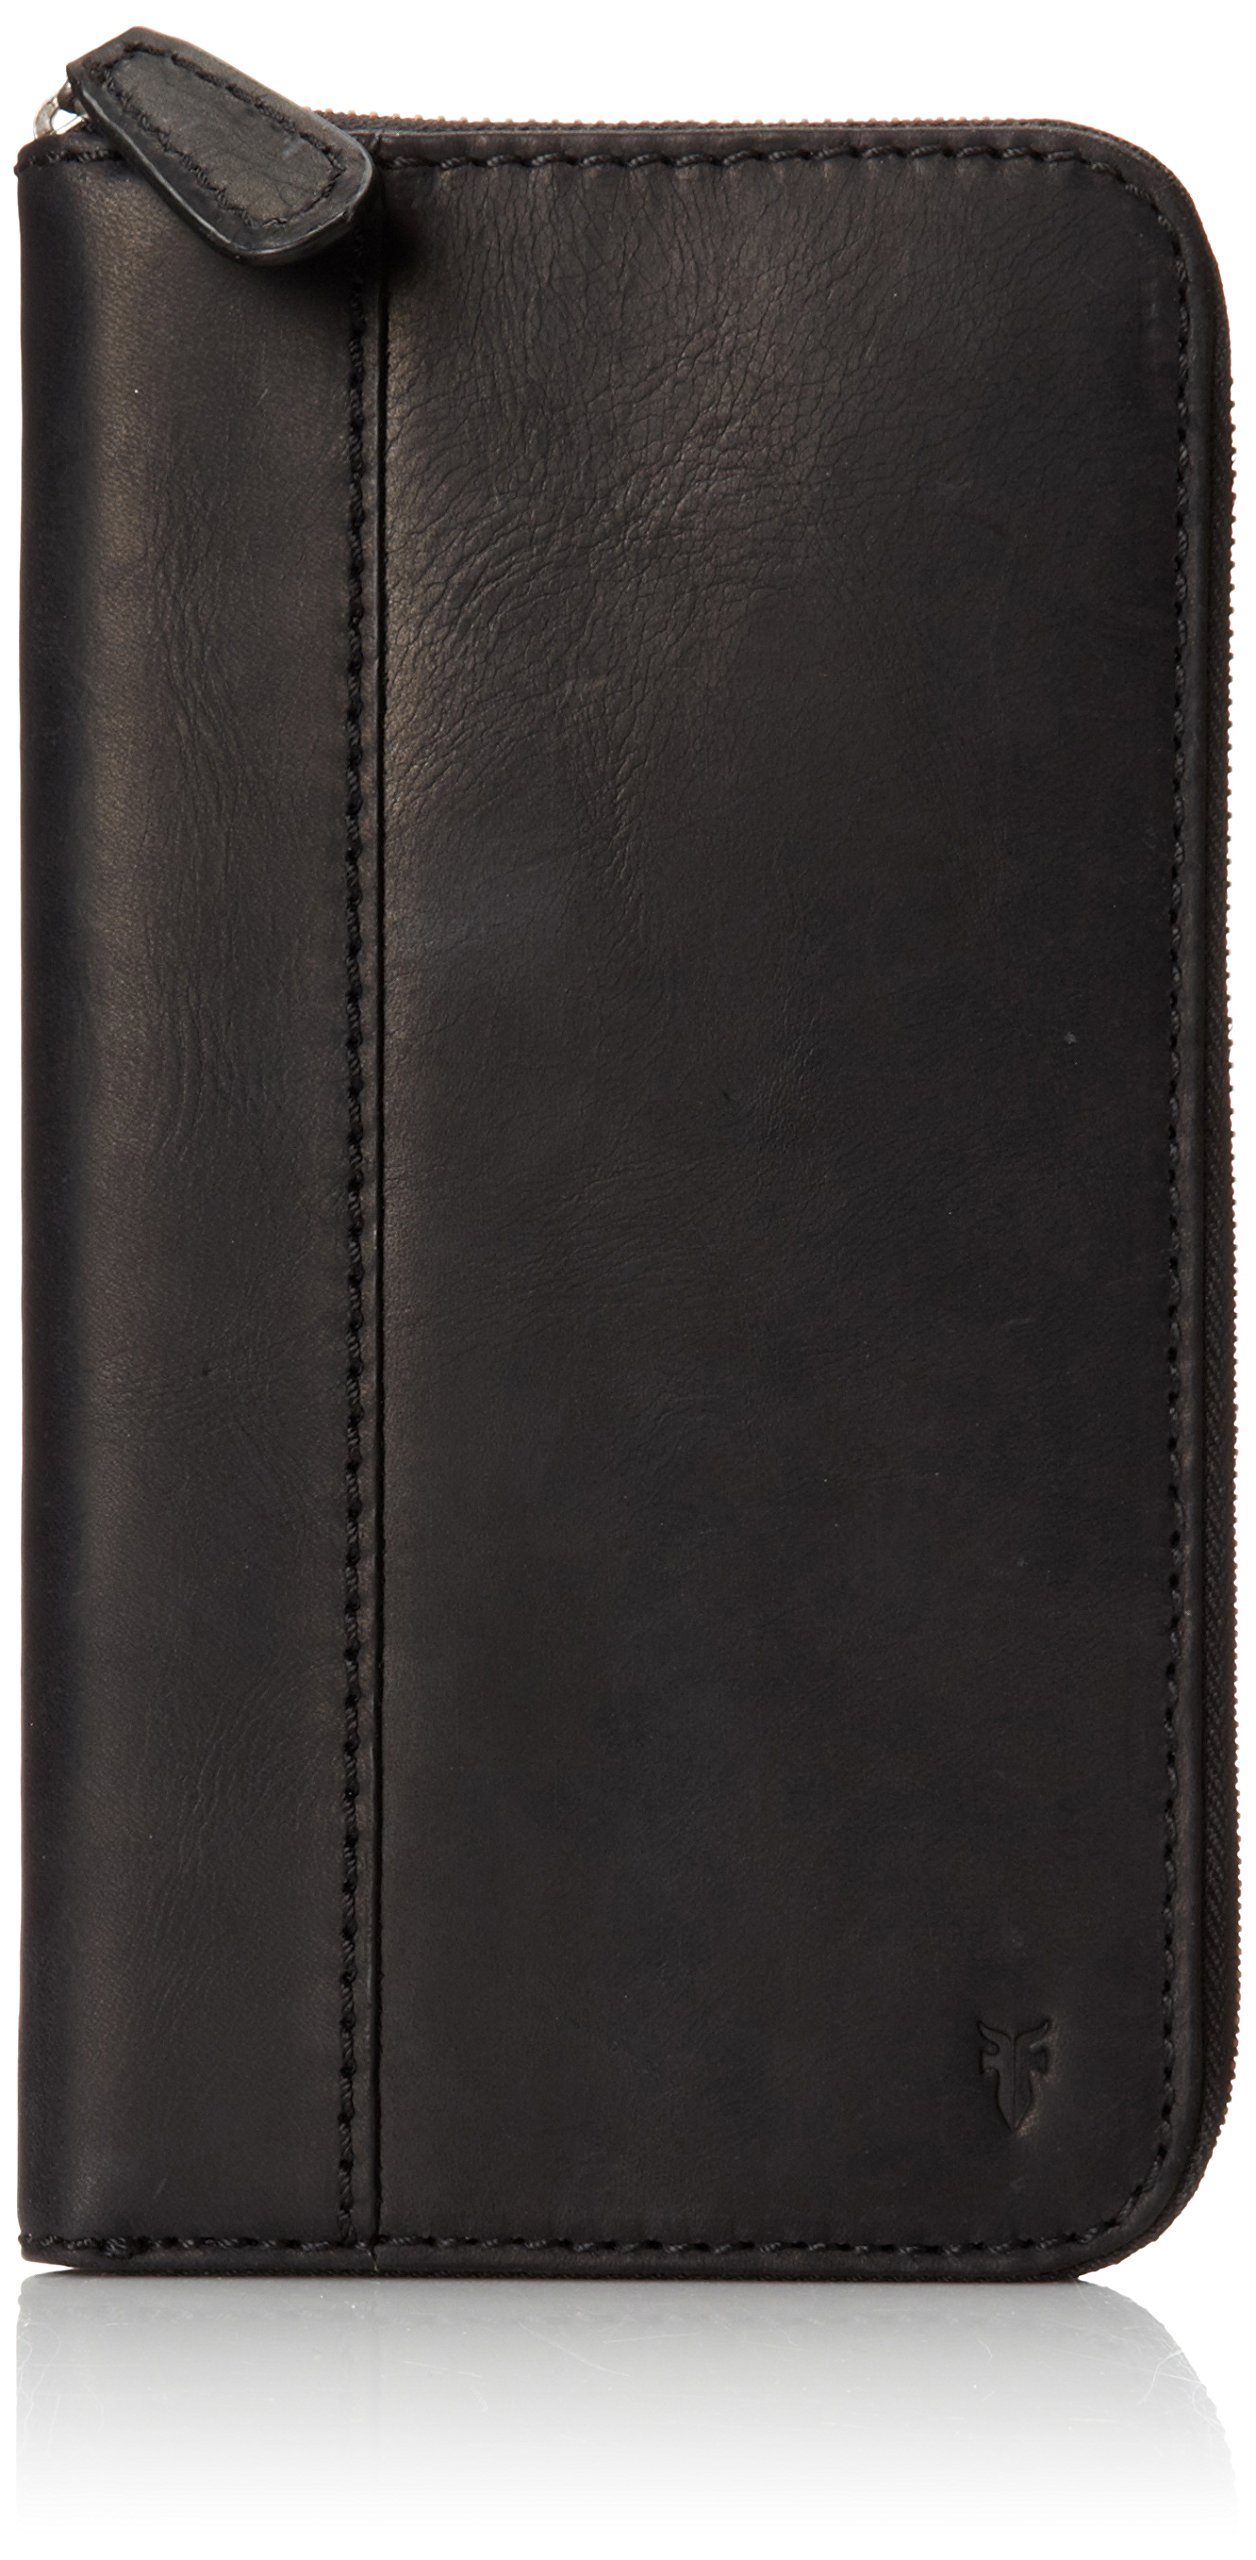 FRYE Men's Logan Travel Wallet, Black, One Size